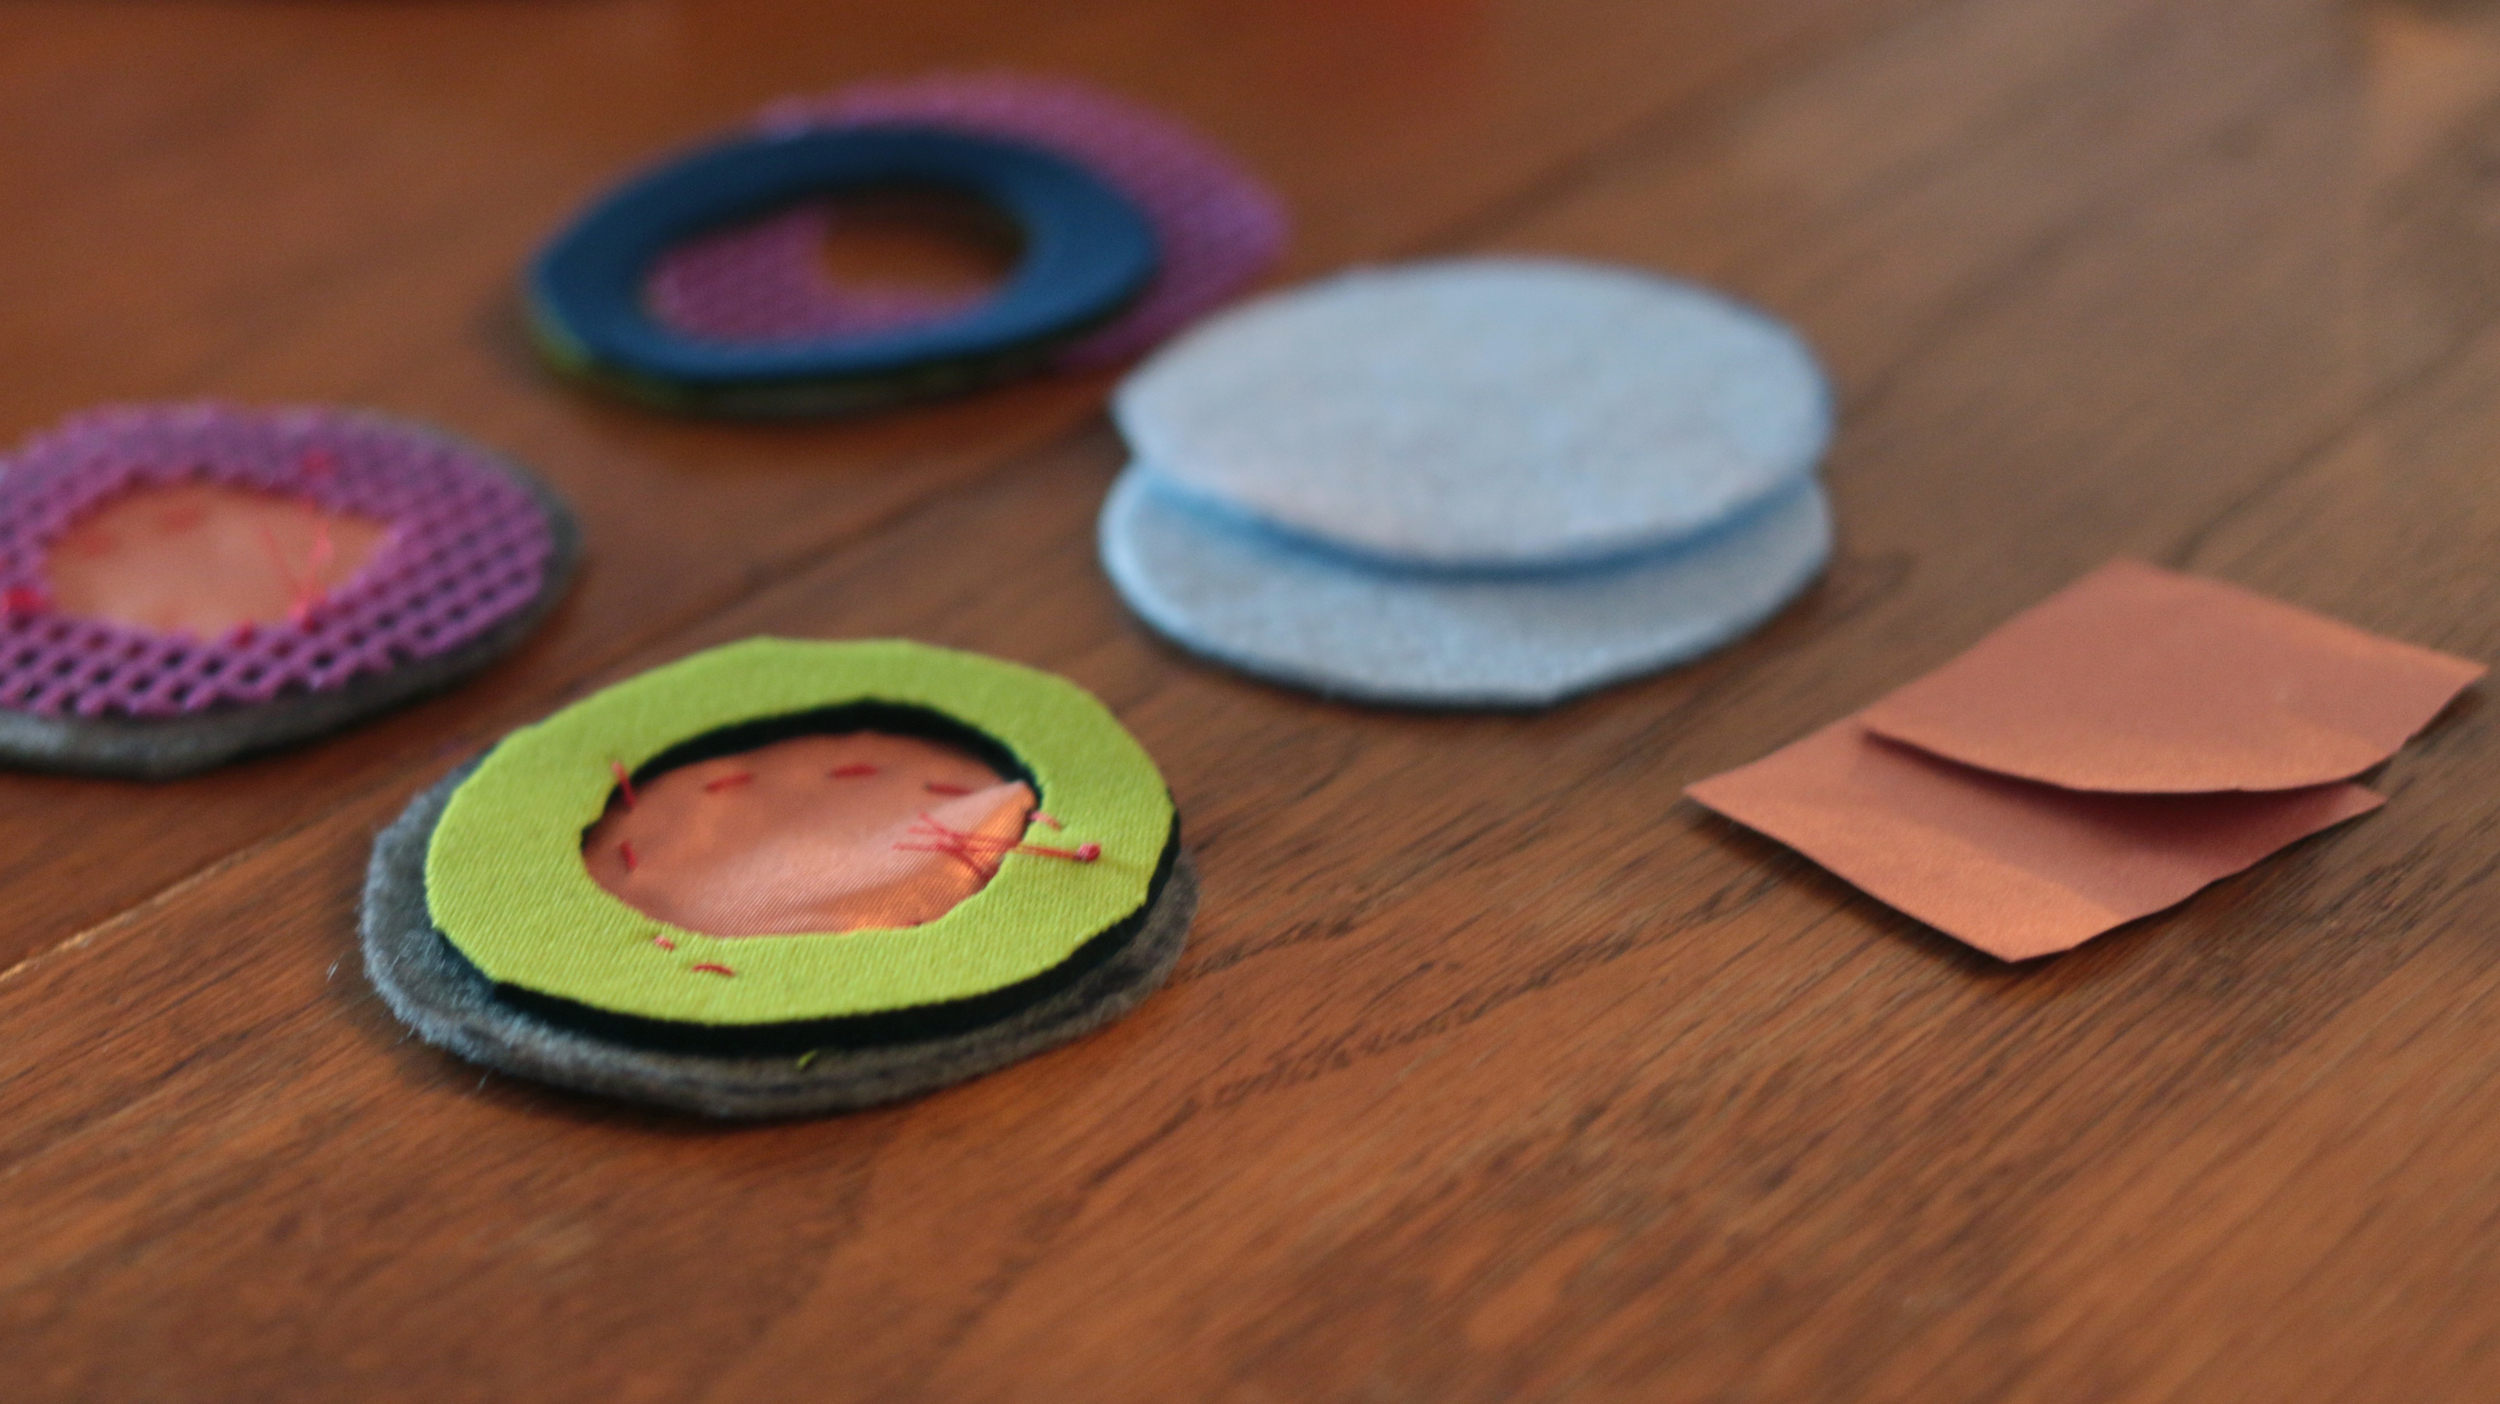 My pieces for a simple button switch using conductive fabric. (*Thanks to   Alex Tosti   for materials). Below are two images of a work-in-progress by   Kristin Slater  .